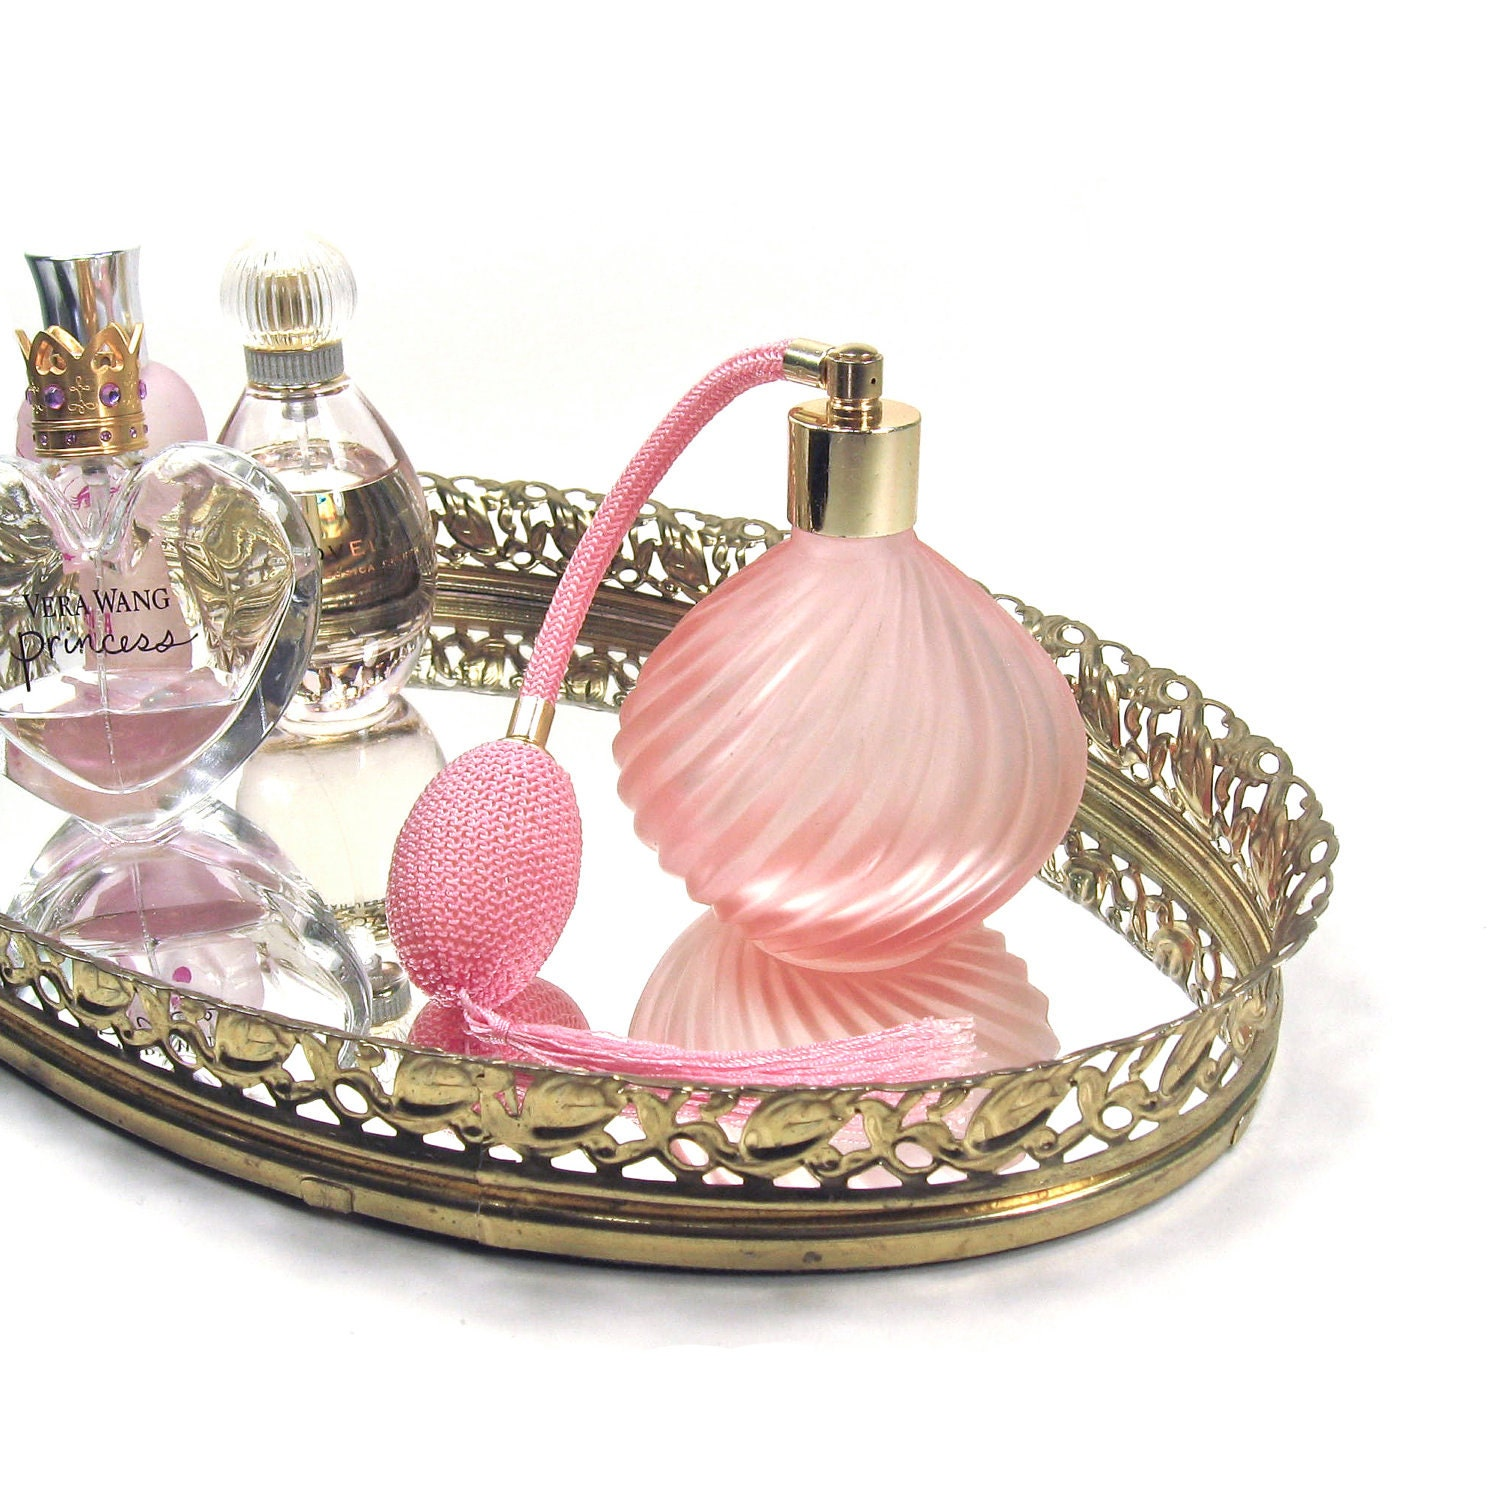 Fragrances Perfume Bottle And Perfume Bottles: Vintage Pink Glass And Gold Perfume Bottle With Atomizer